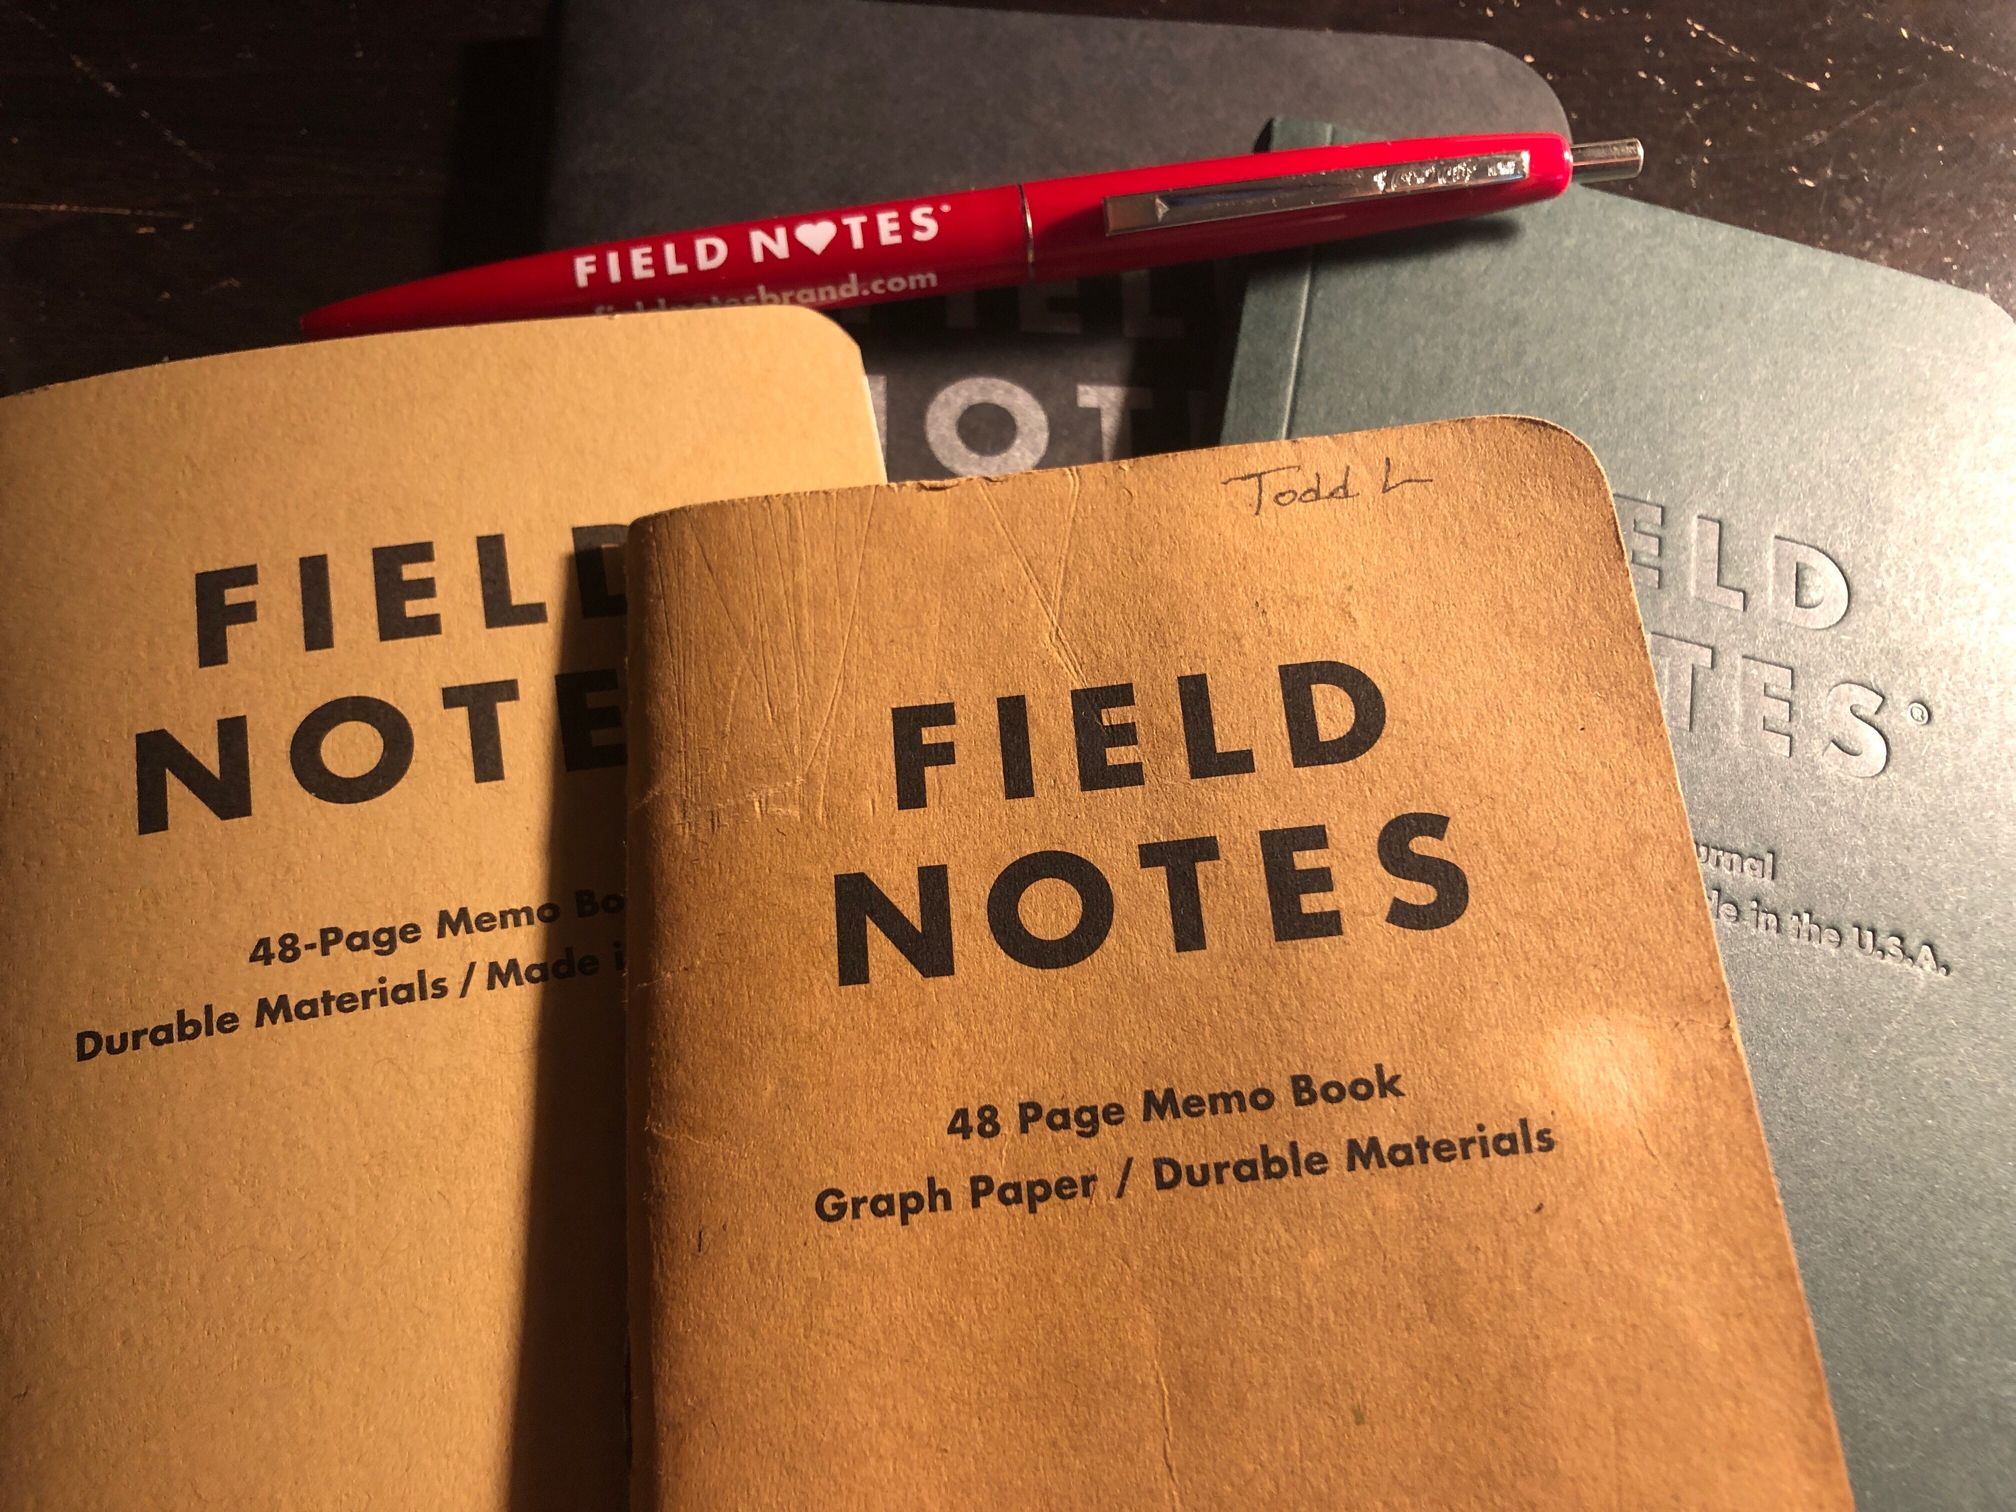 Field Notes Brand memo books